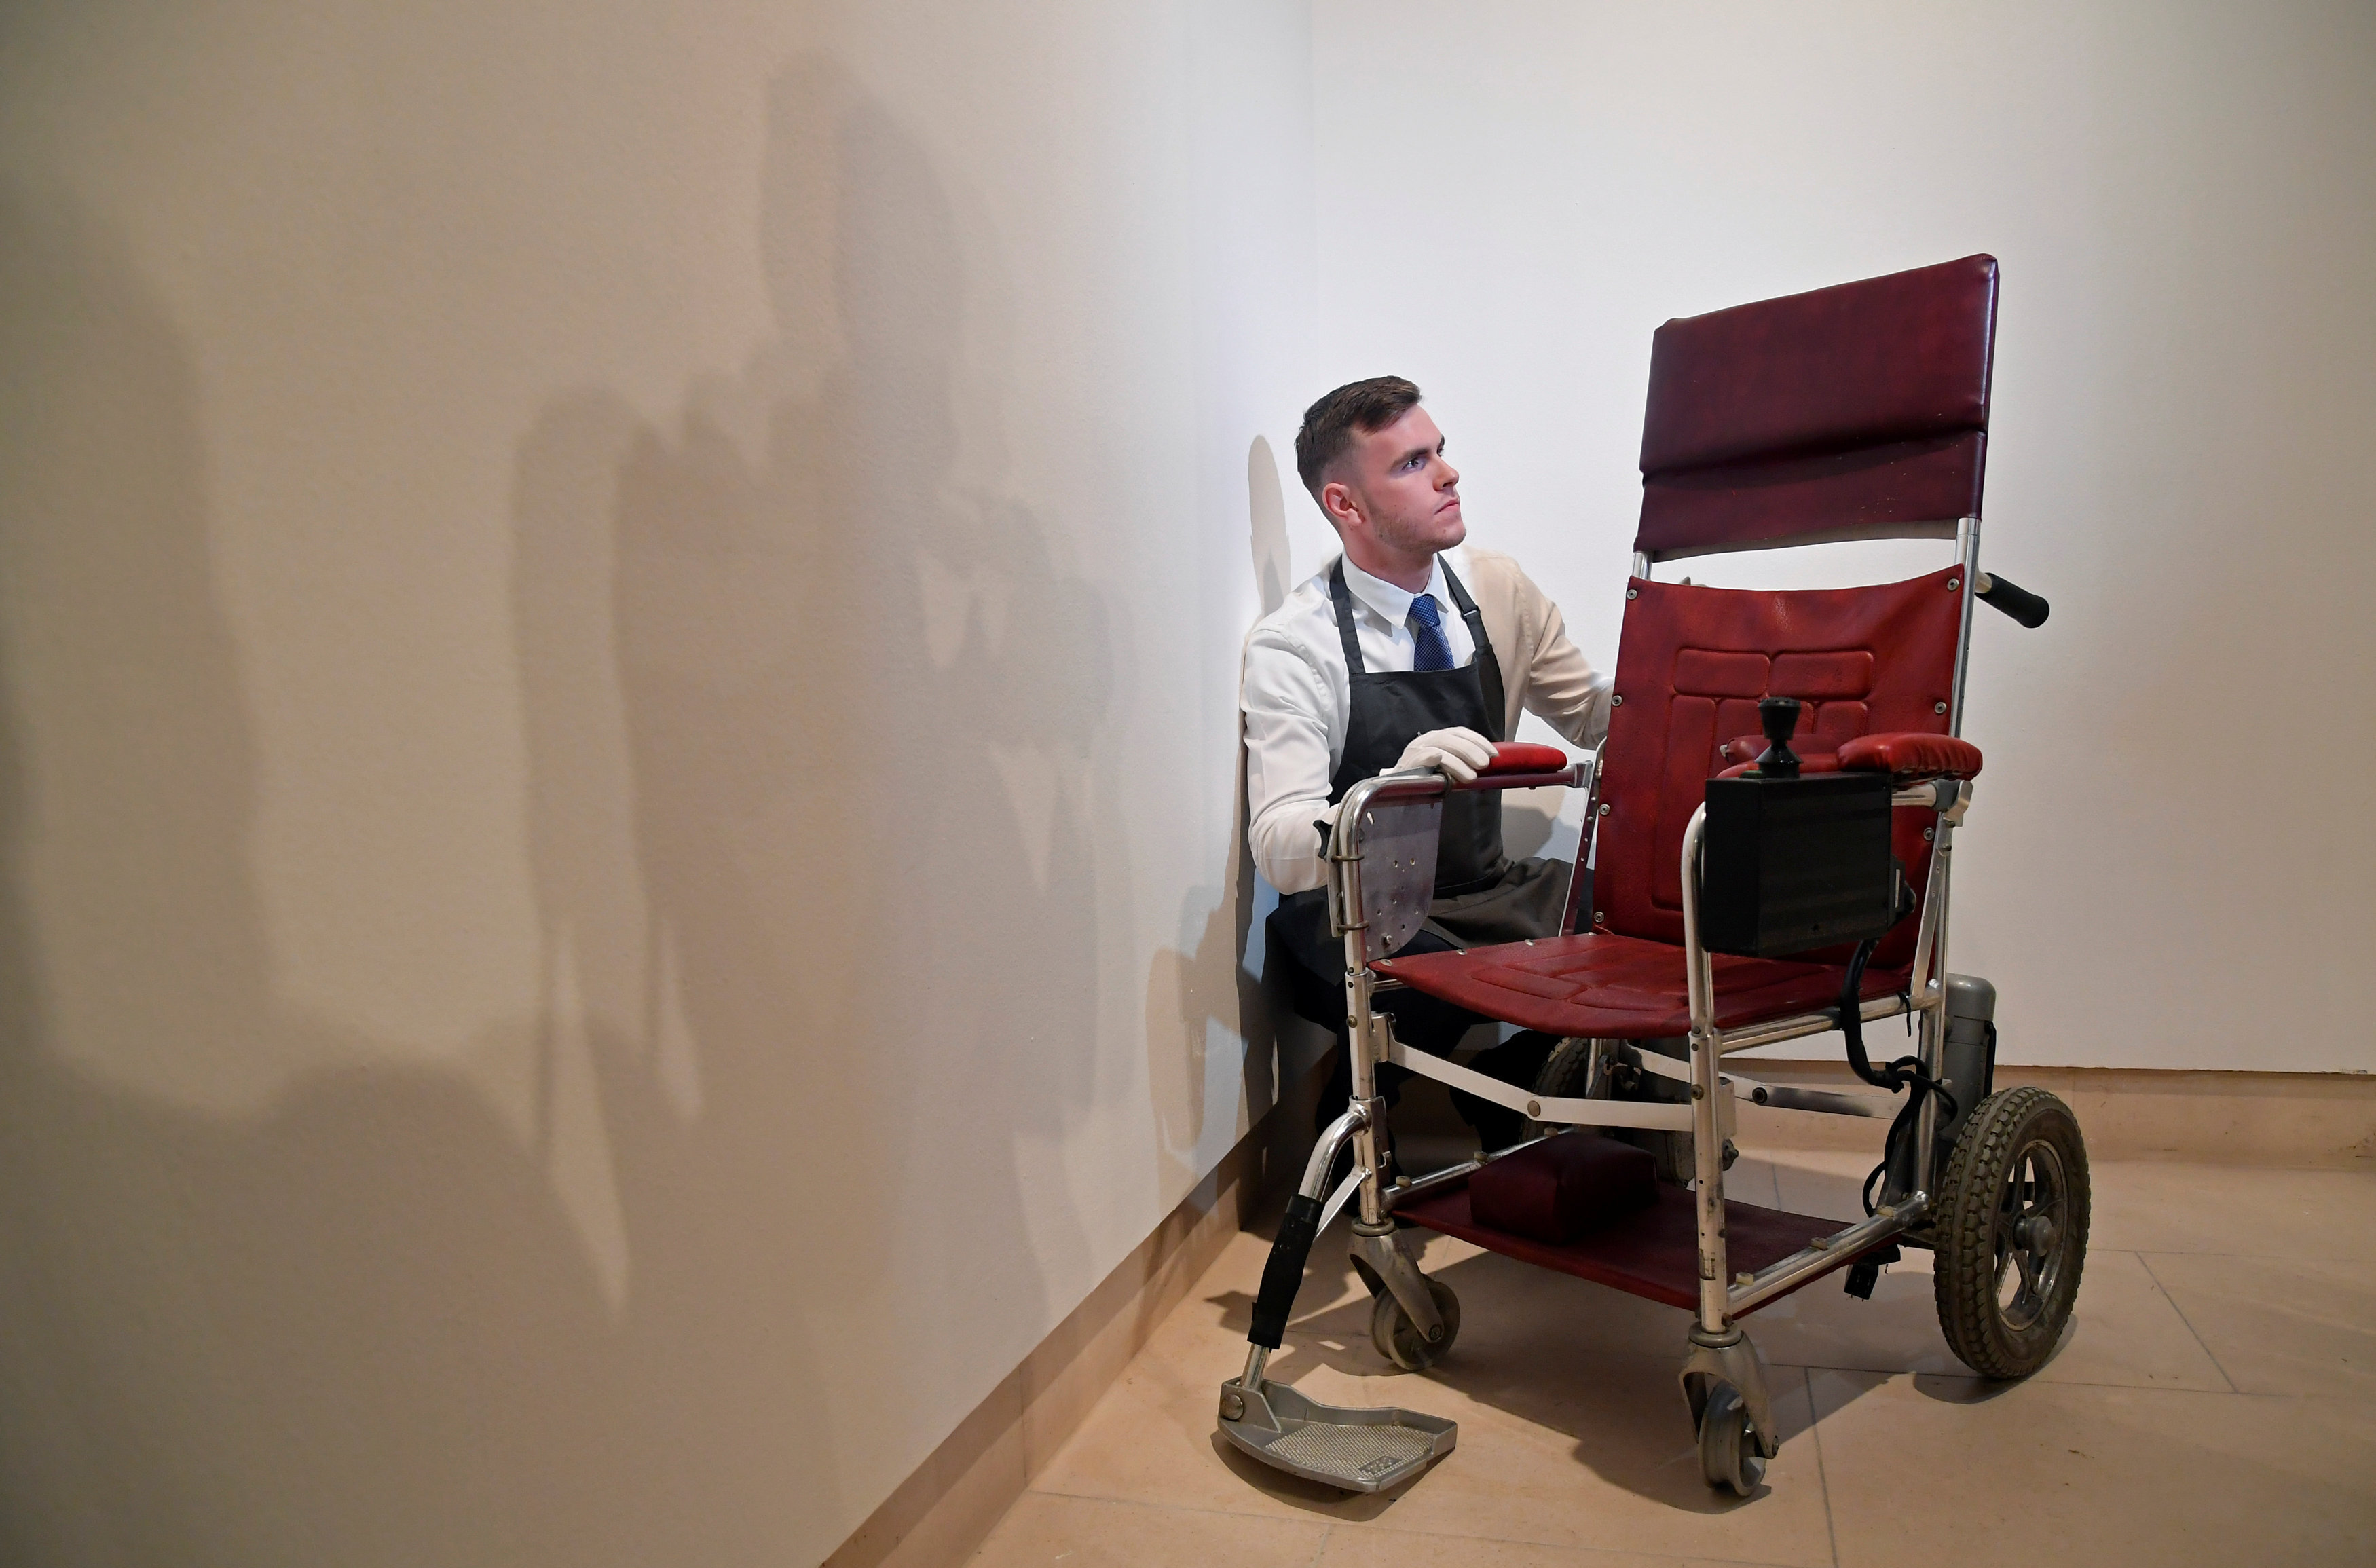 Fine-art handler Tom Richardson poses with a motorised wheelchair belonging to British theoretical physicist Stephen Hawking ahead of an auction of items from Hawkings' personal estate at Christie's in London, Britain October 30, 2018.